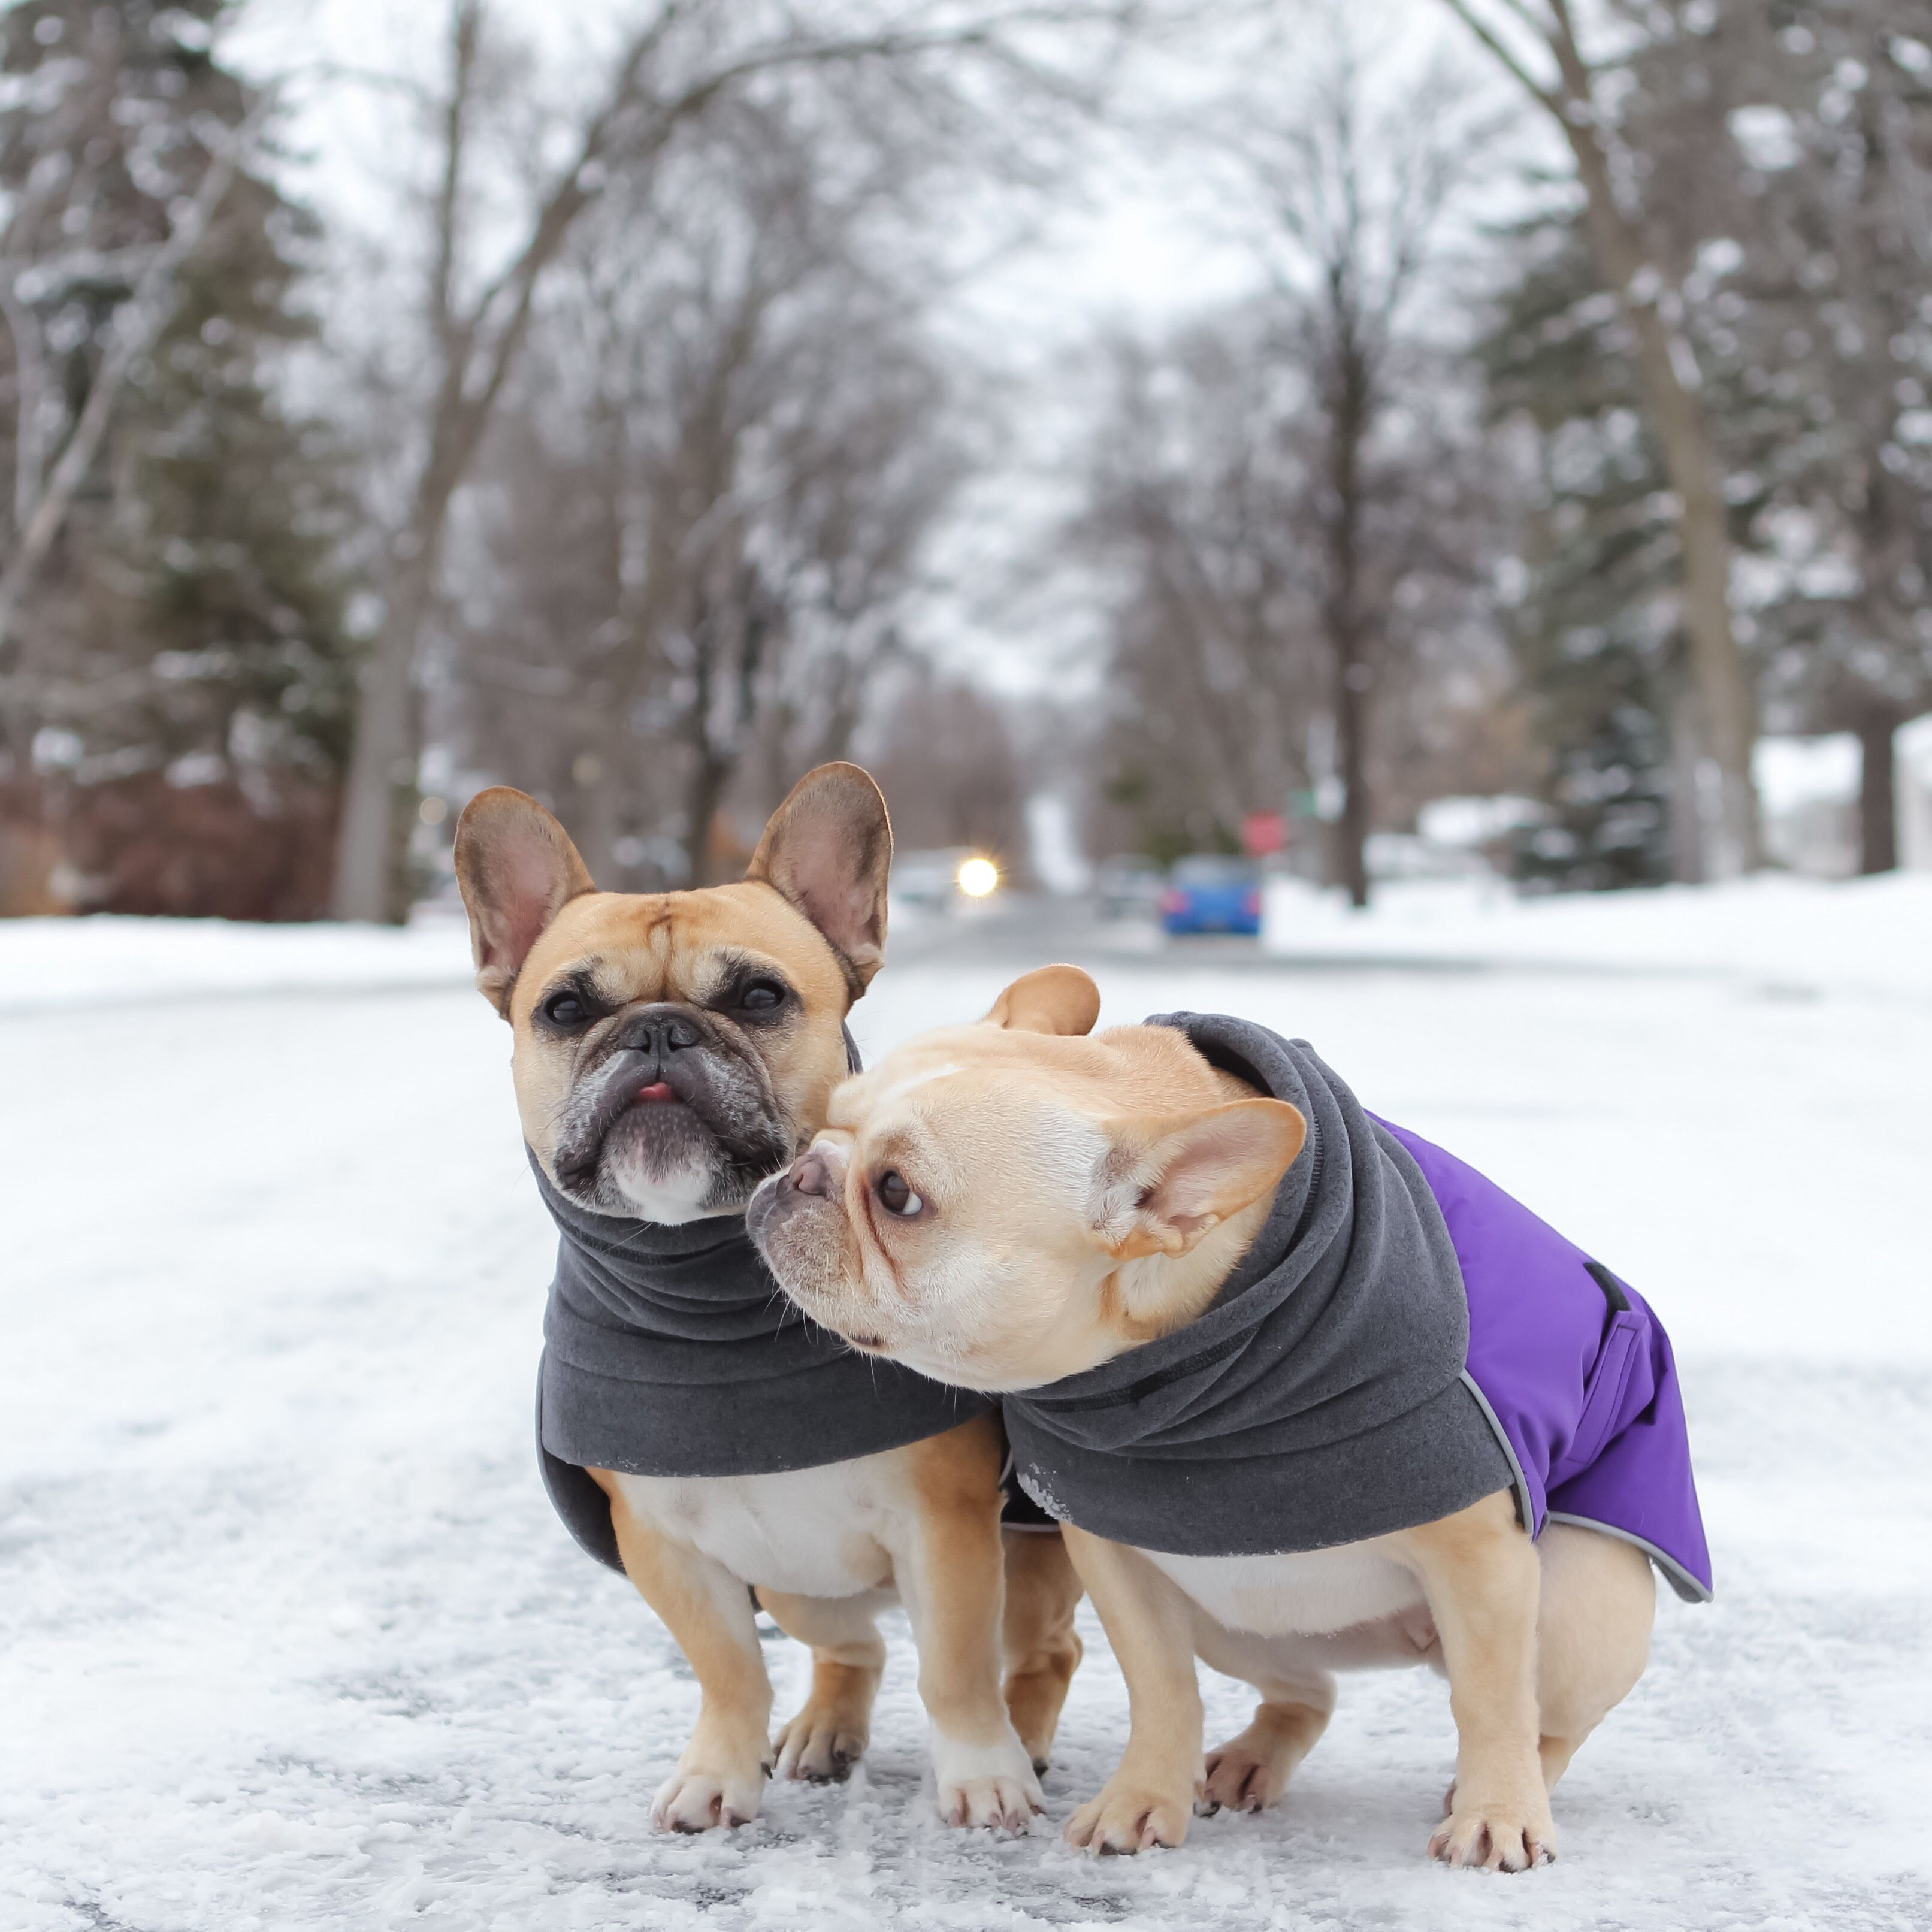 Home French Bulldog Puppies Bulldog Breeds Pets Dogs Breeds